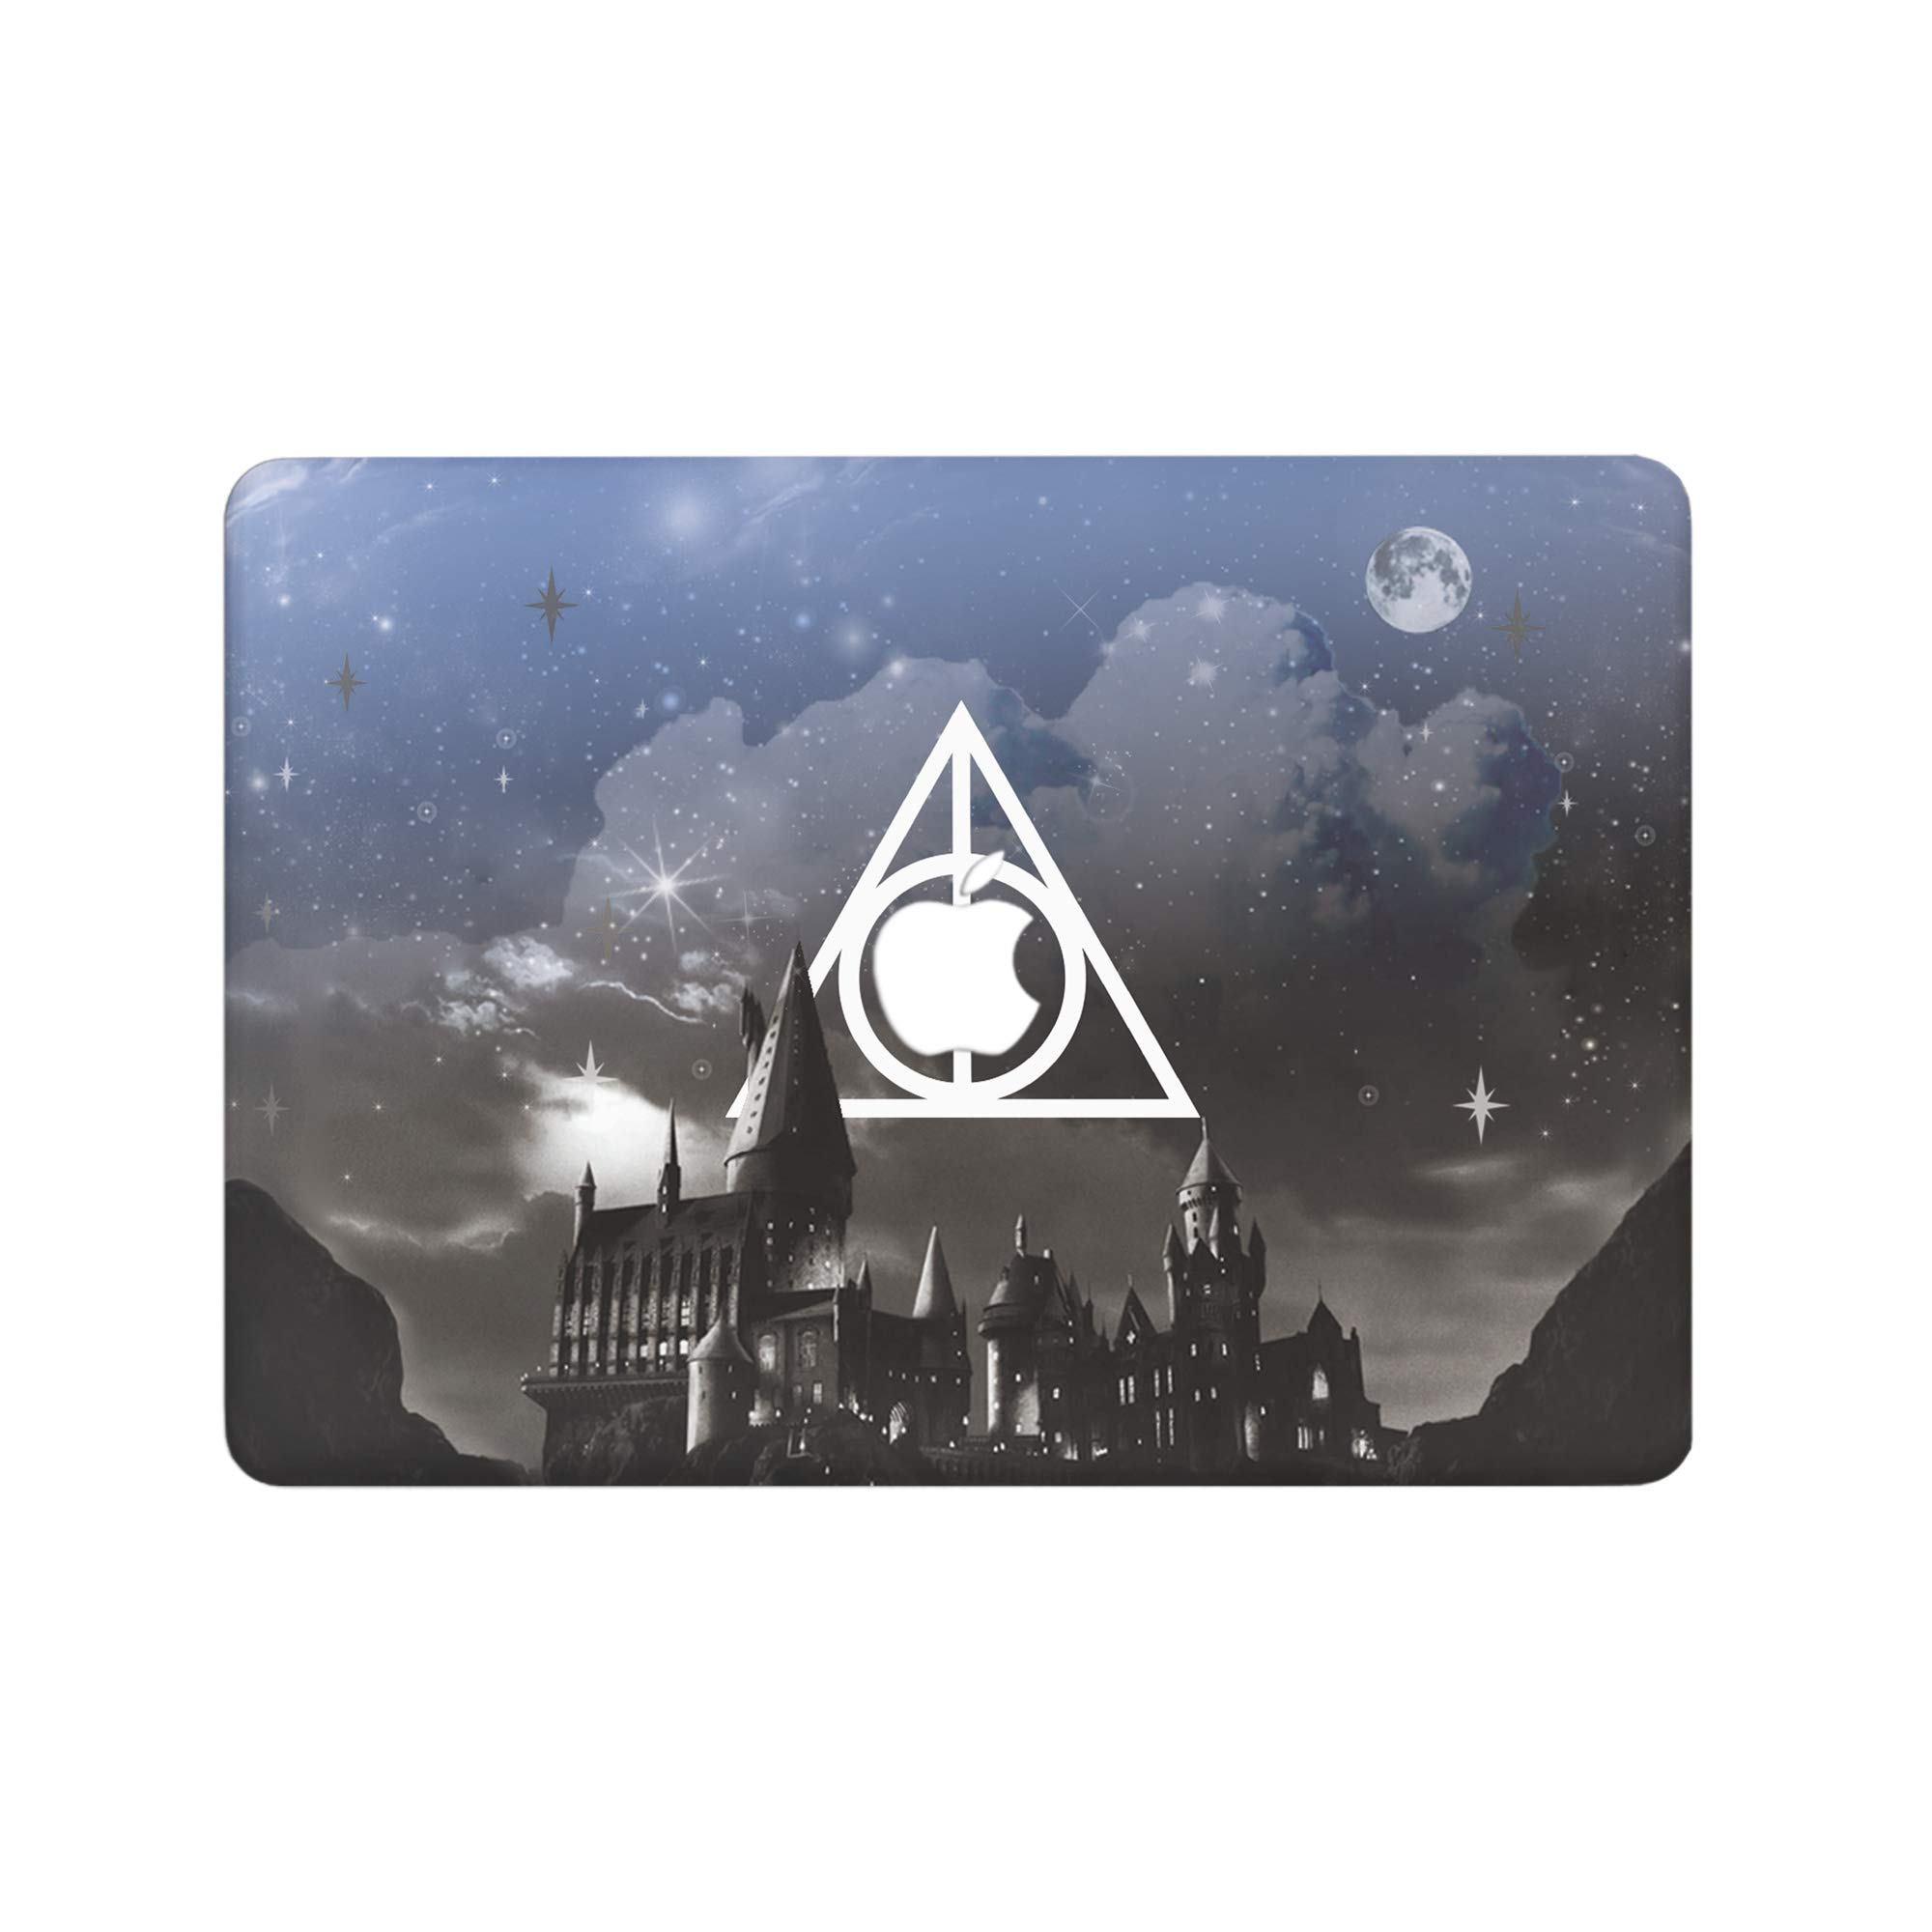 ZizzStore MacBook Hard Case and Keyboard Decal Set Protective Hard Shell with Vinyl Sticker Around Keyboard for (Pro 13 (A1706 & A1708 & A1989) 2018, Harry Potter Always) by ZizzStore (Image #4)